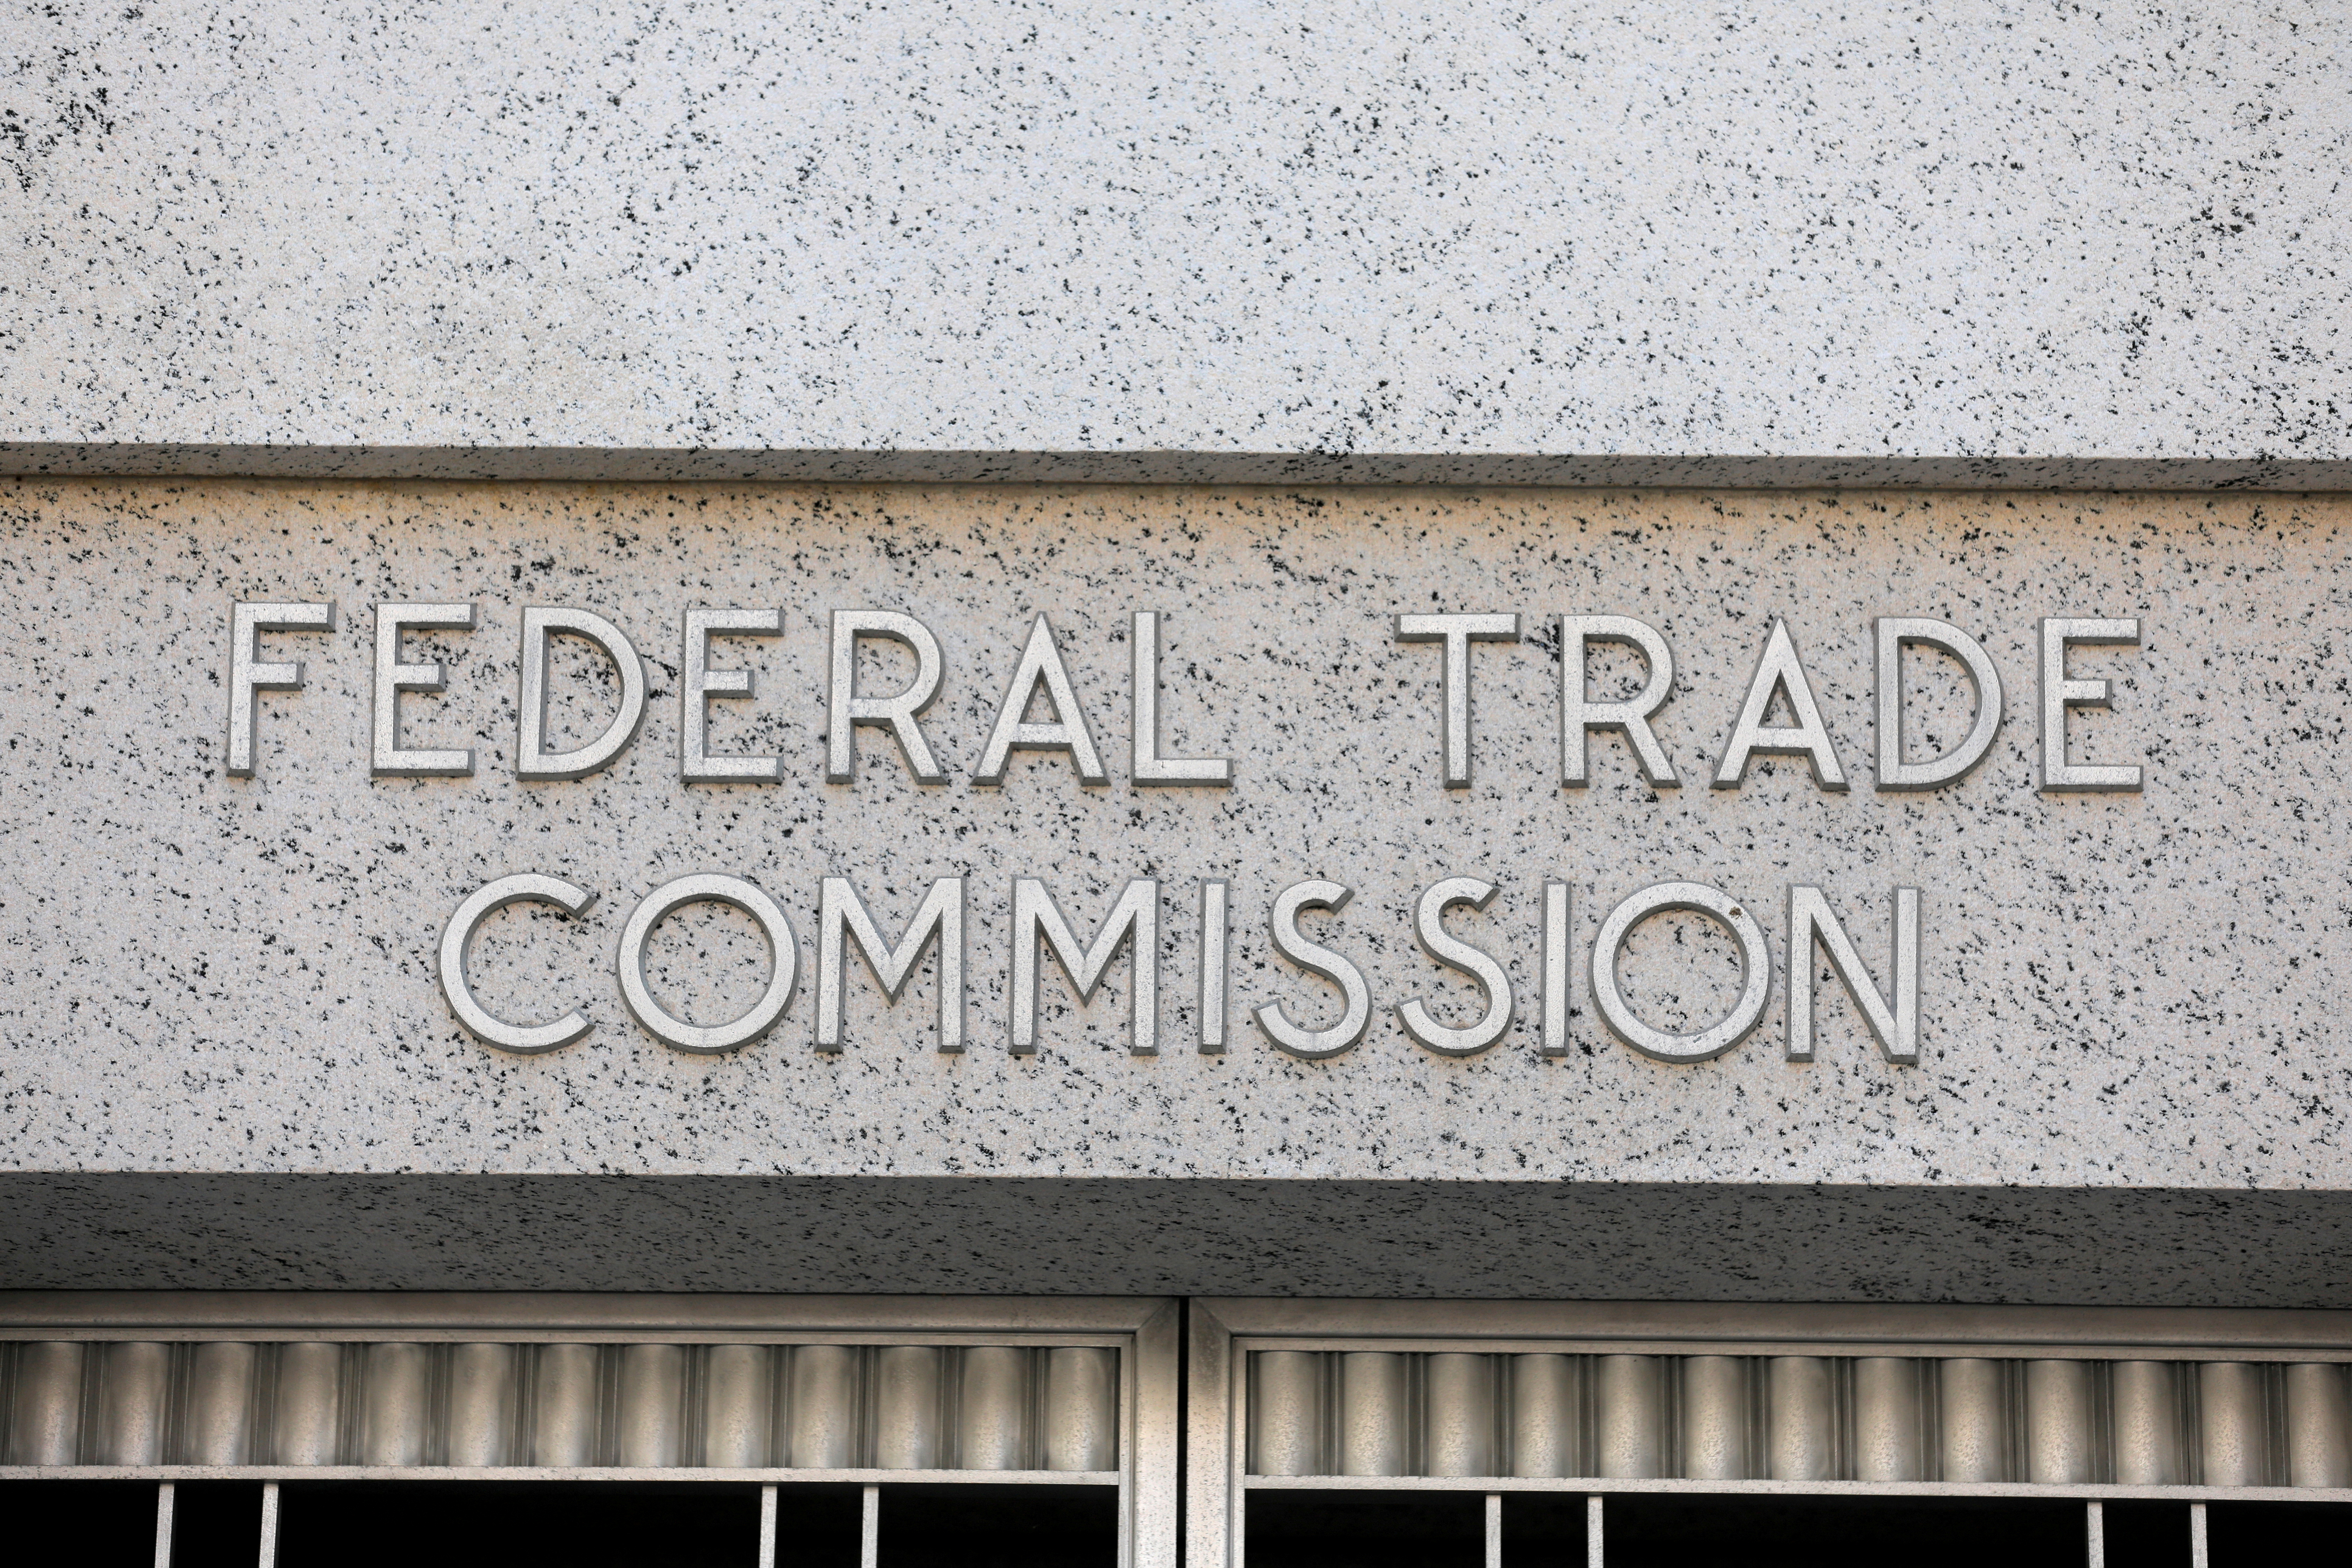 Signage is seen at the Federal Trade Commission headquarters in Washington, D.C., U.S., August 29, 2020. REUTERS/Andrew Kelly/File Photo